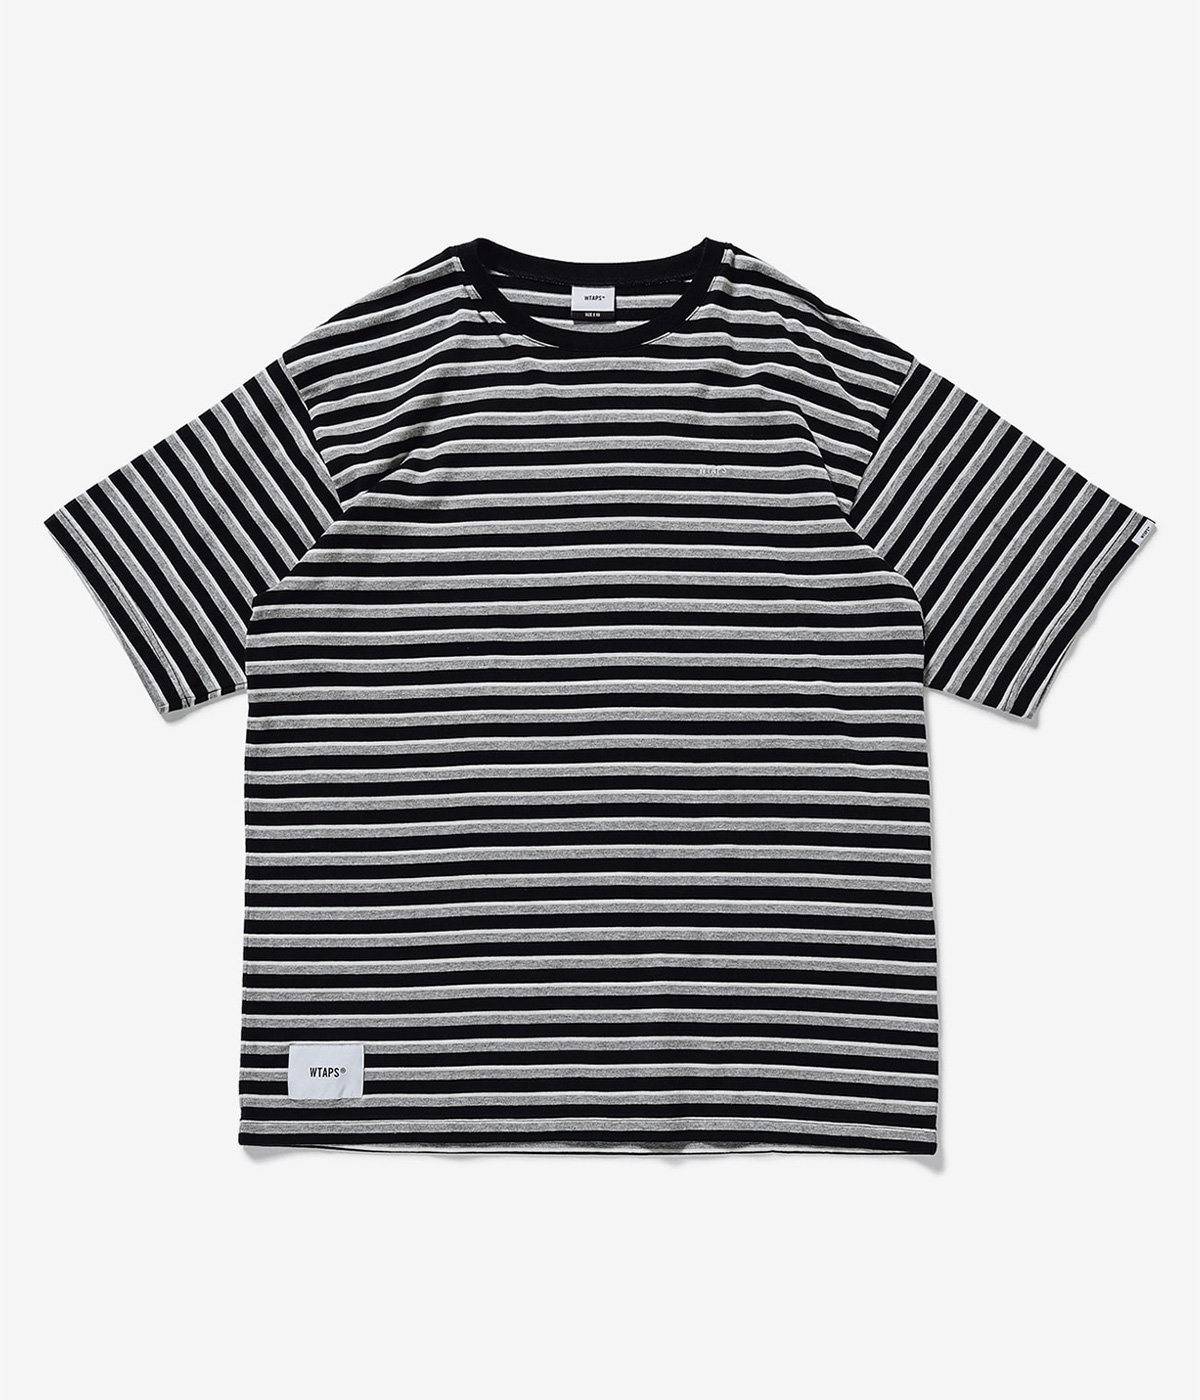 VASQUE SS / TEE. COTTON